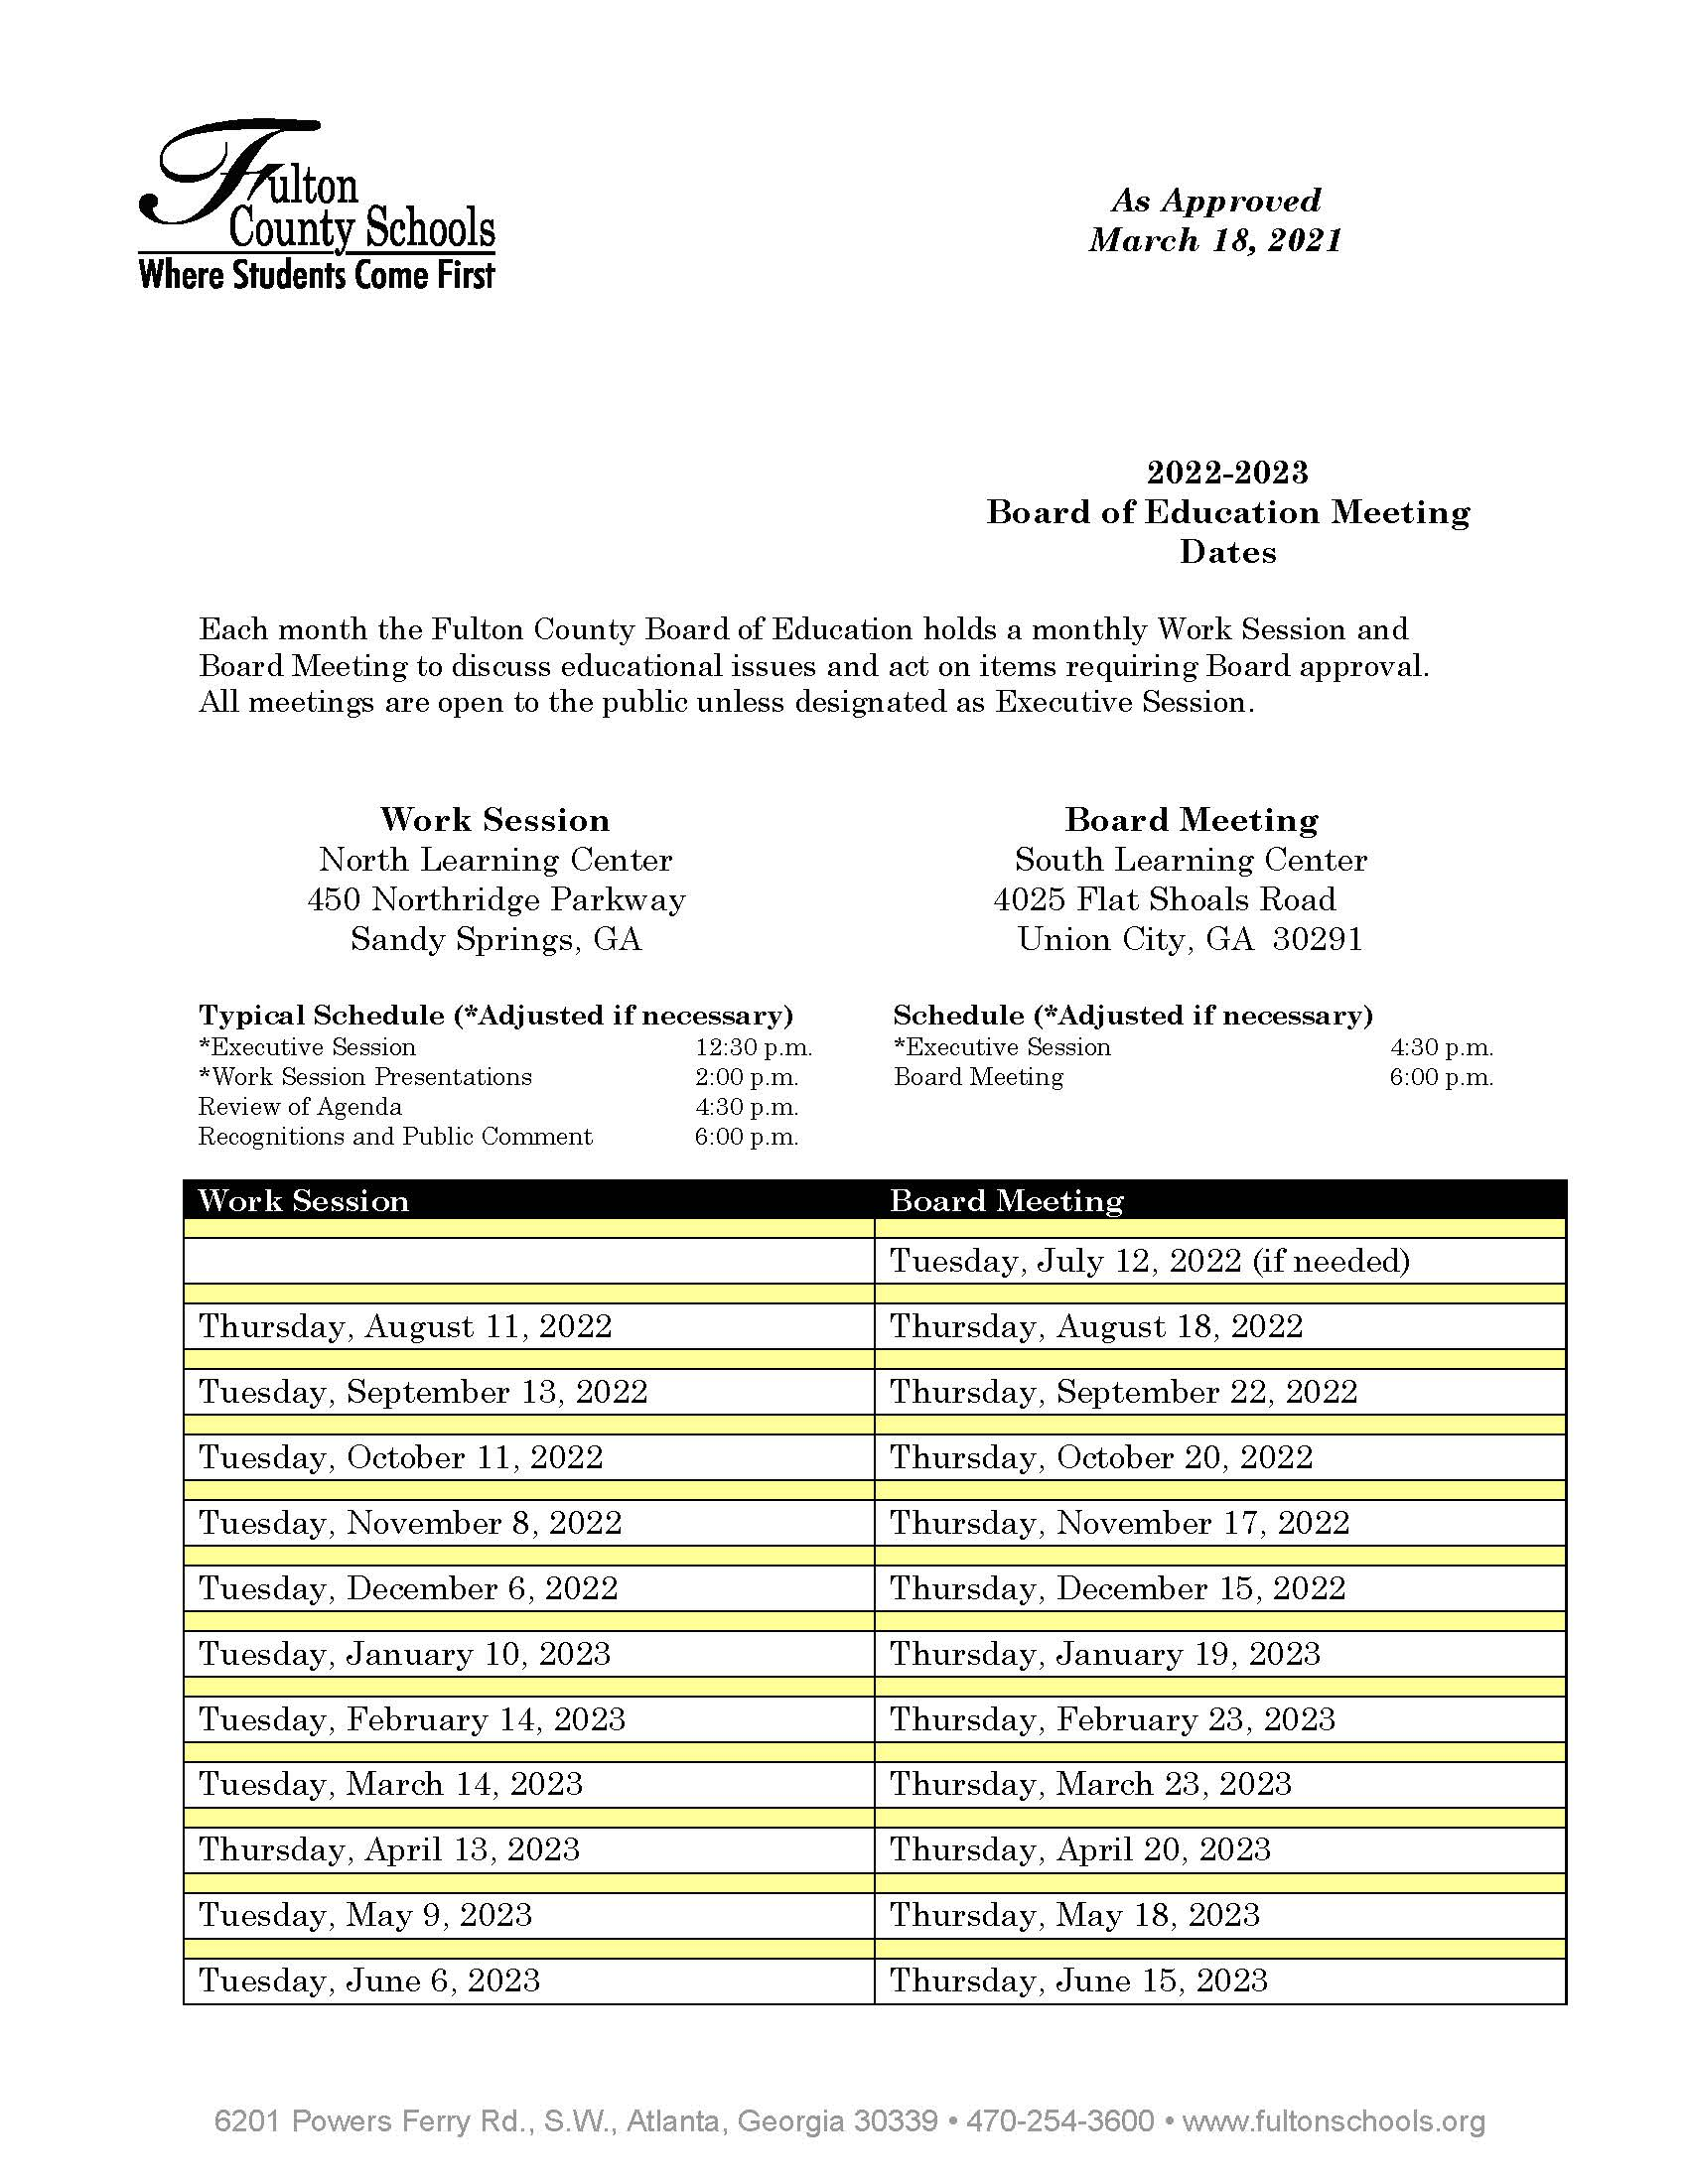 Printable 2022-23 Board Meeting Schedule